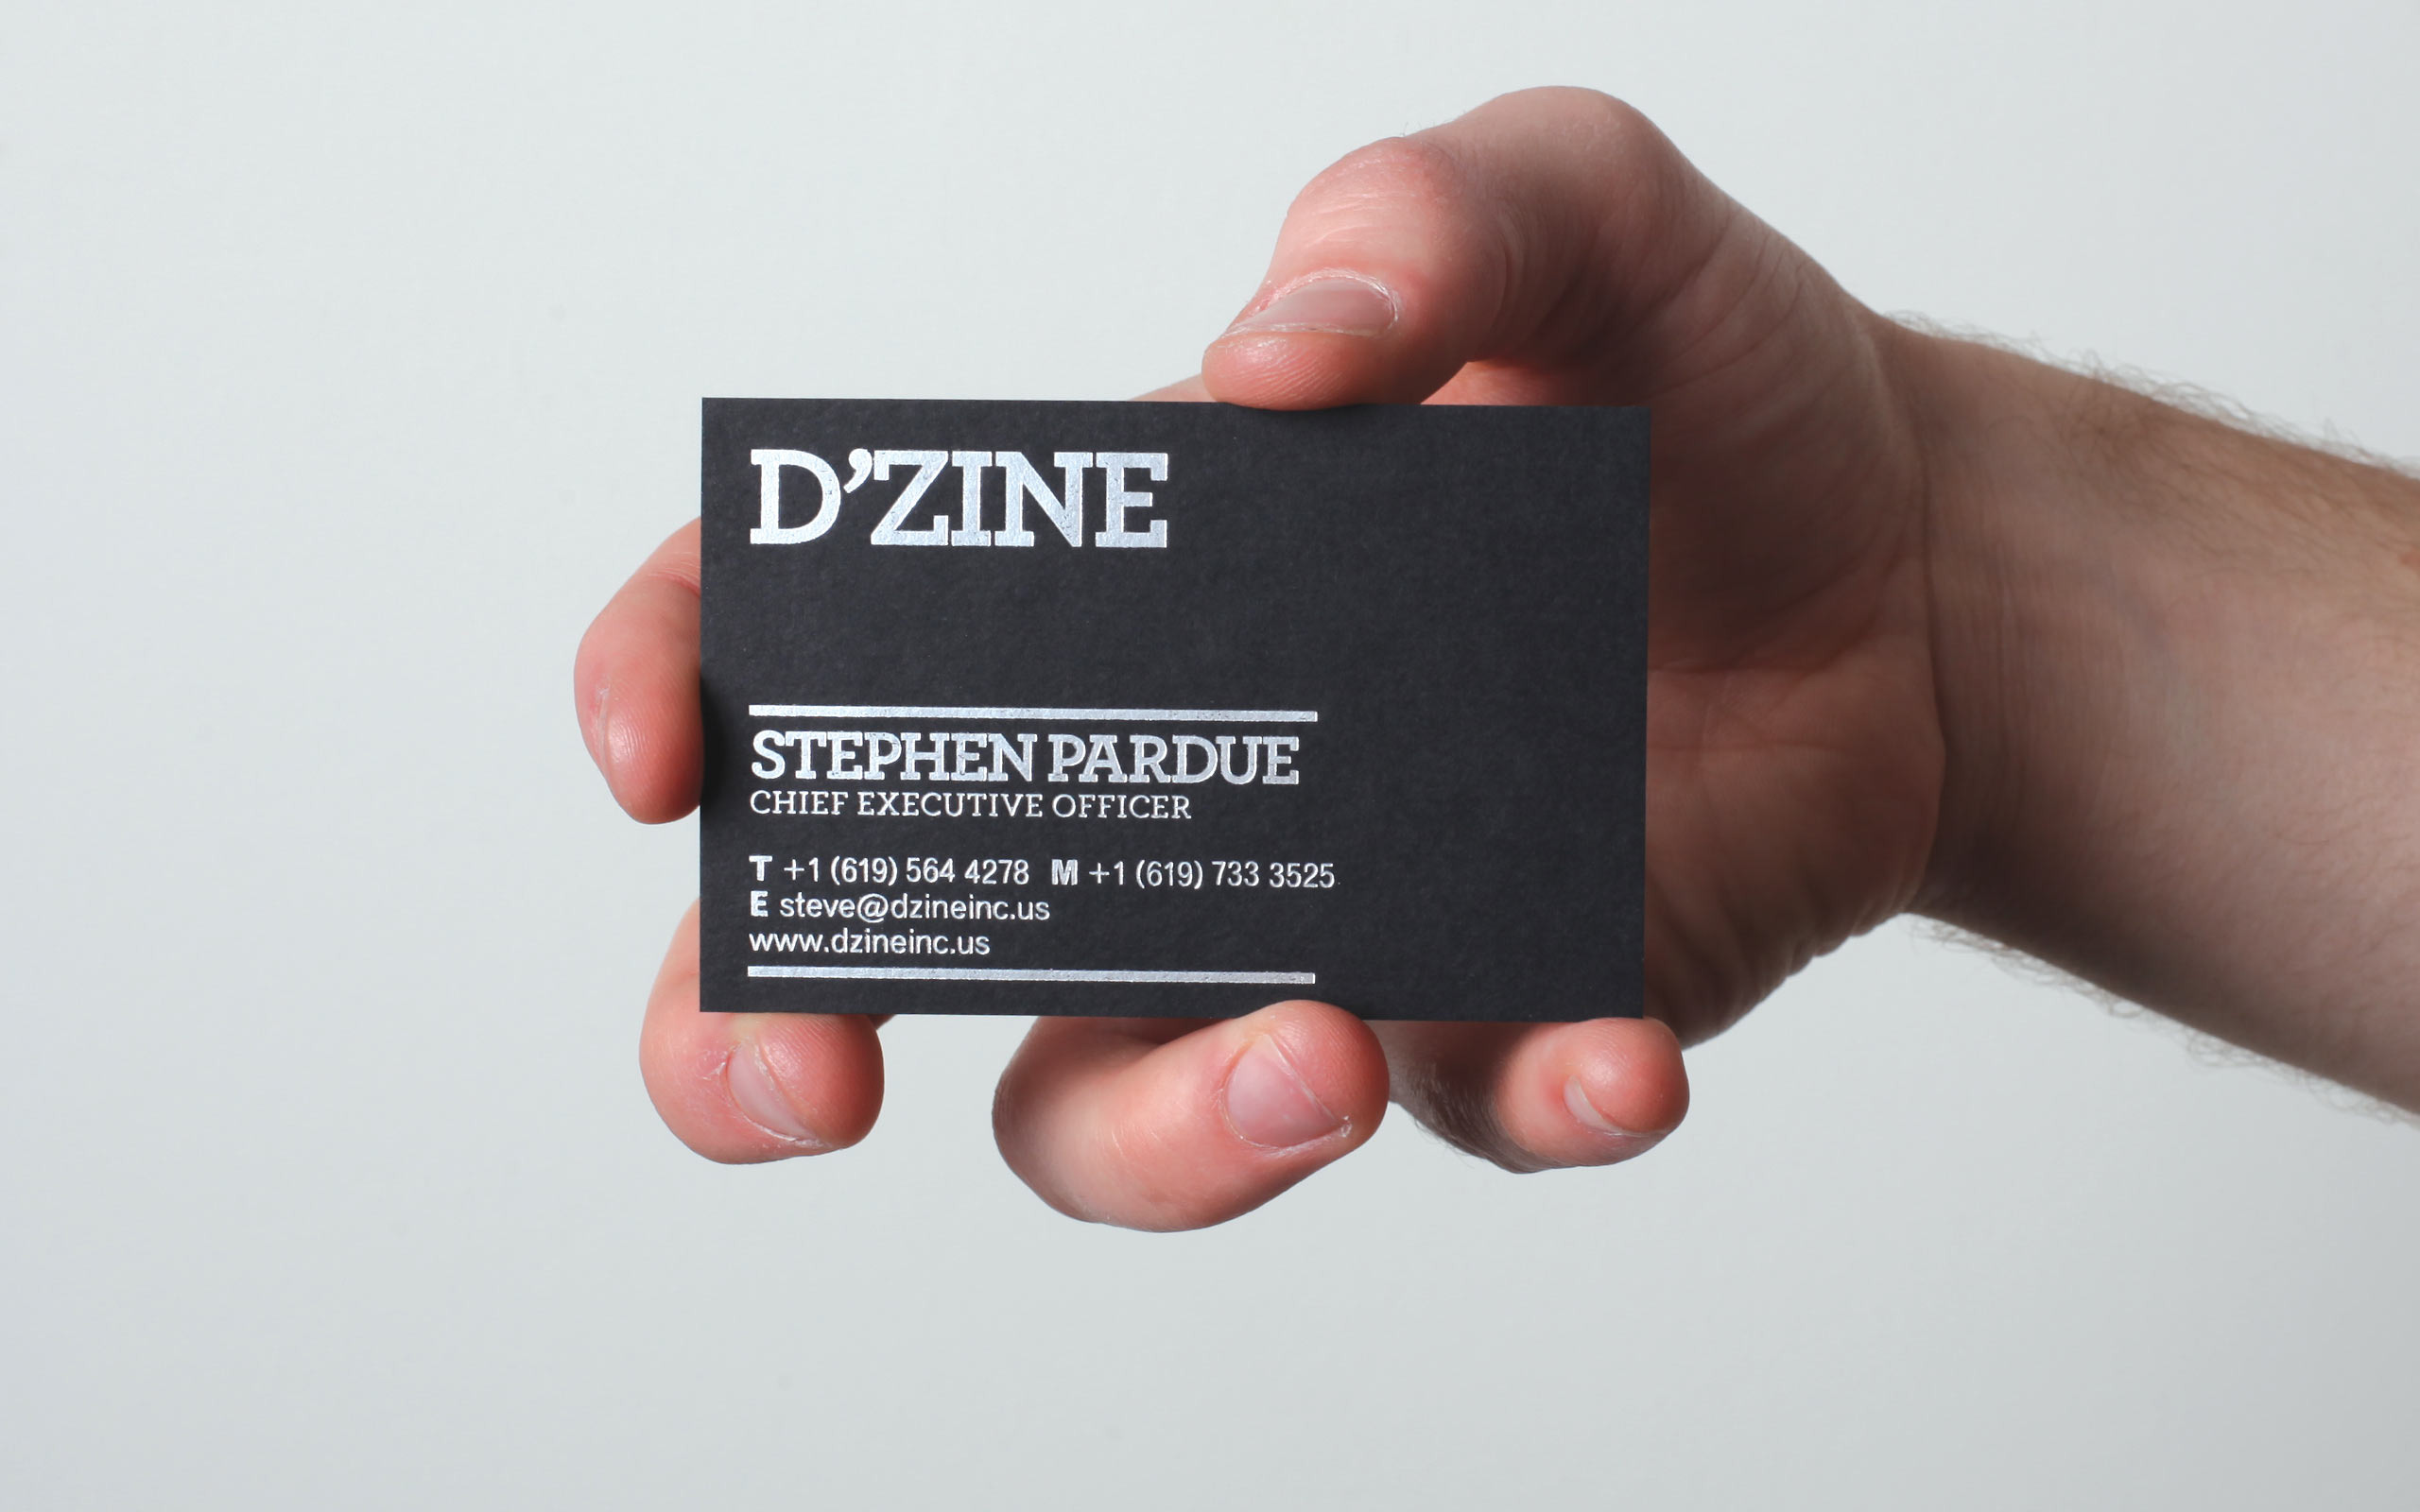 D'Zine Interactive. | Two Times Elliott. Creative Agency, Notting Hill. +44 (0)203 214 3133